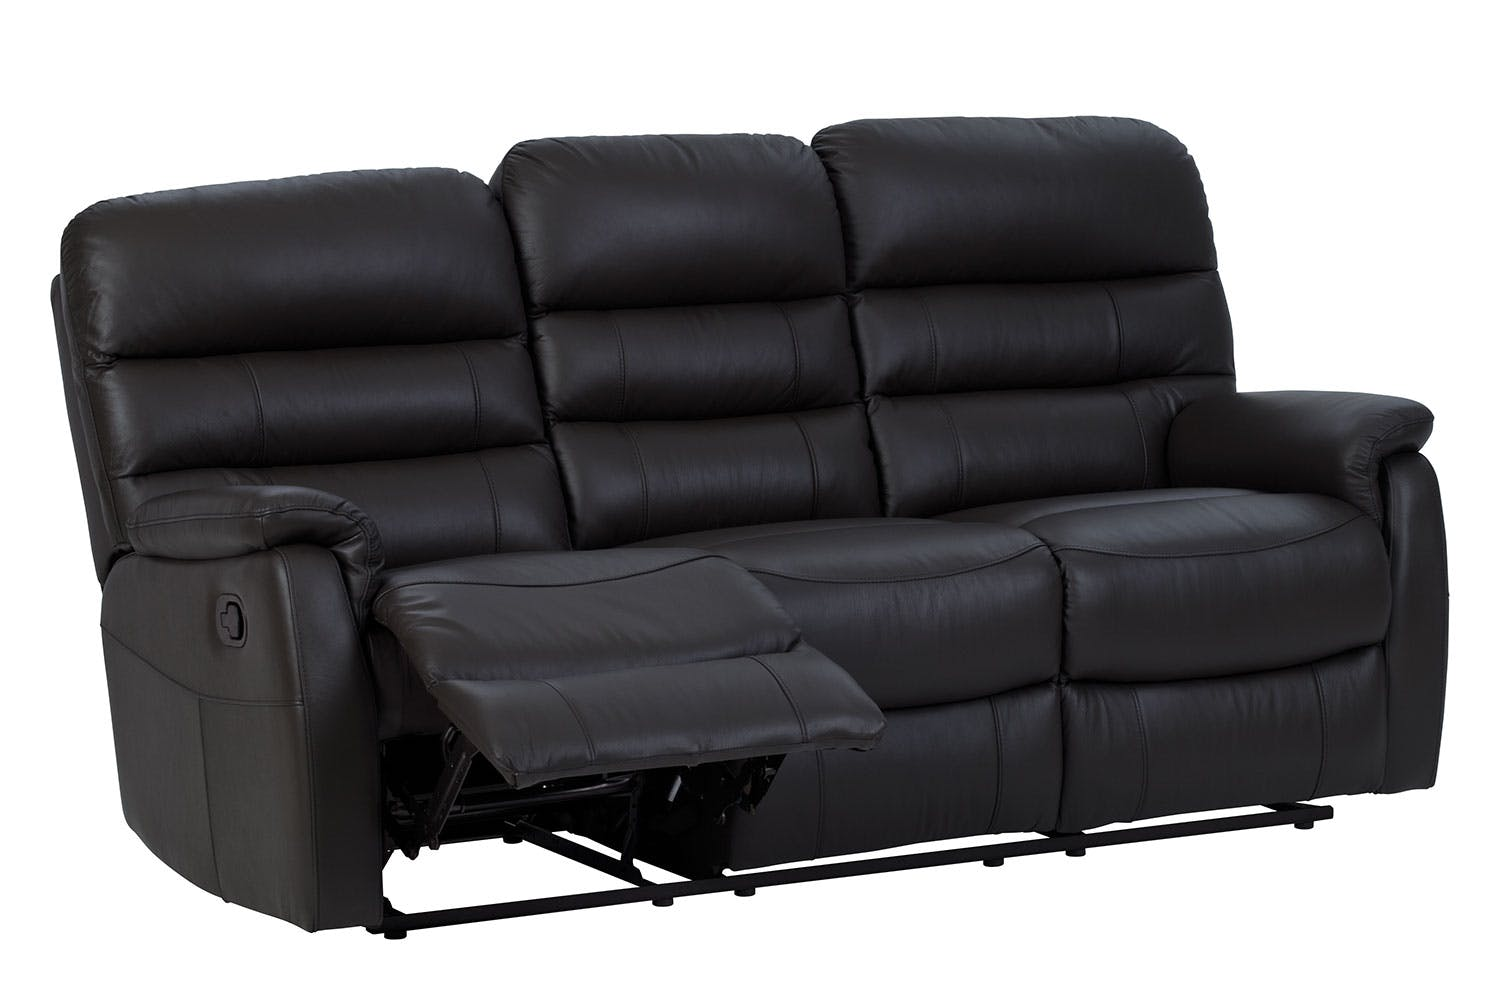 Luna 3 Seater Leather Recliner Sofa by Vivin